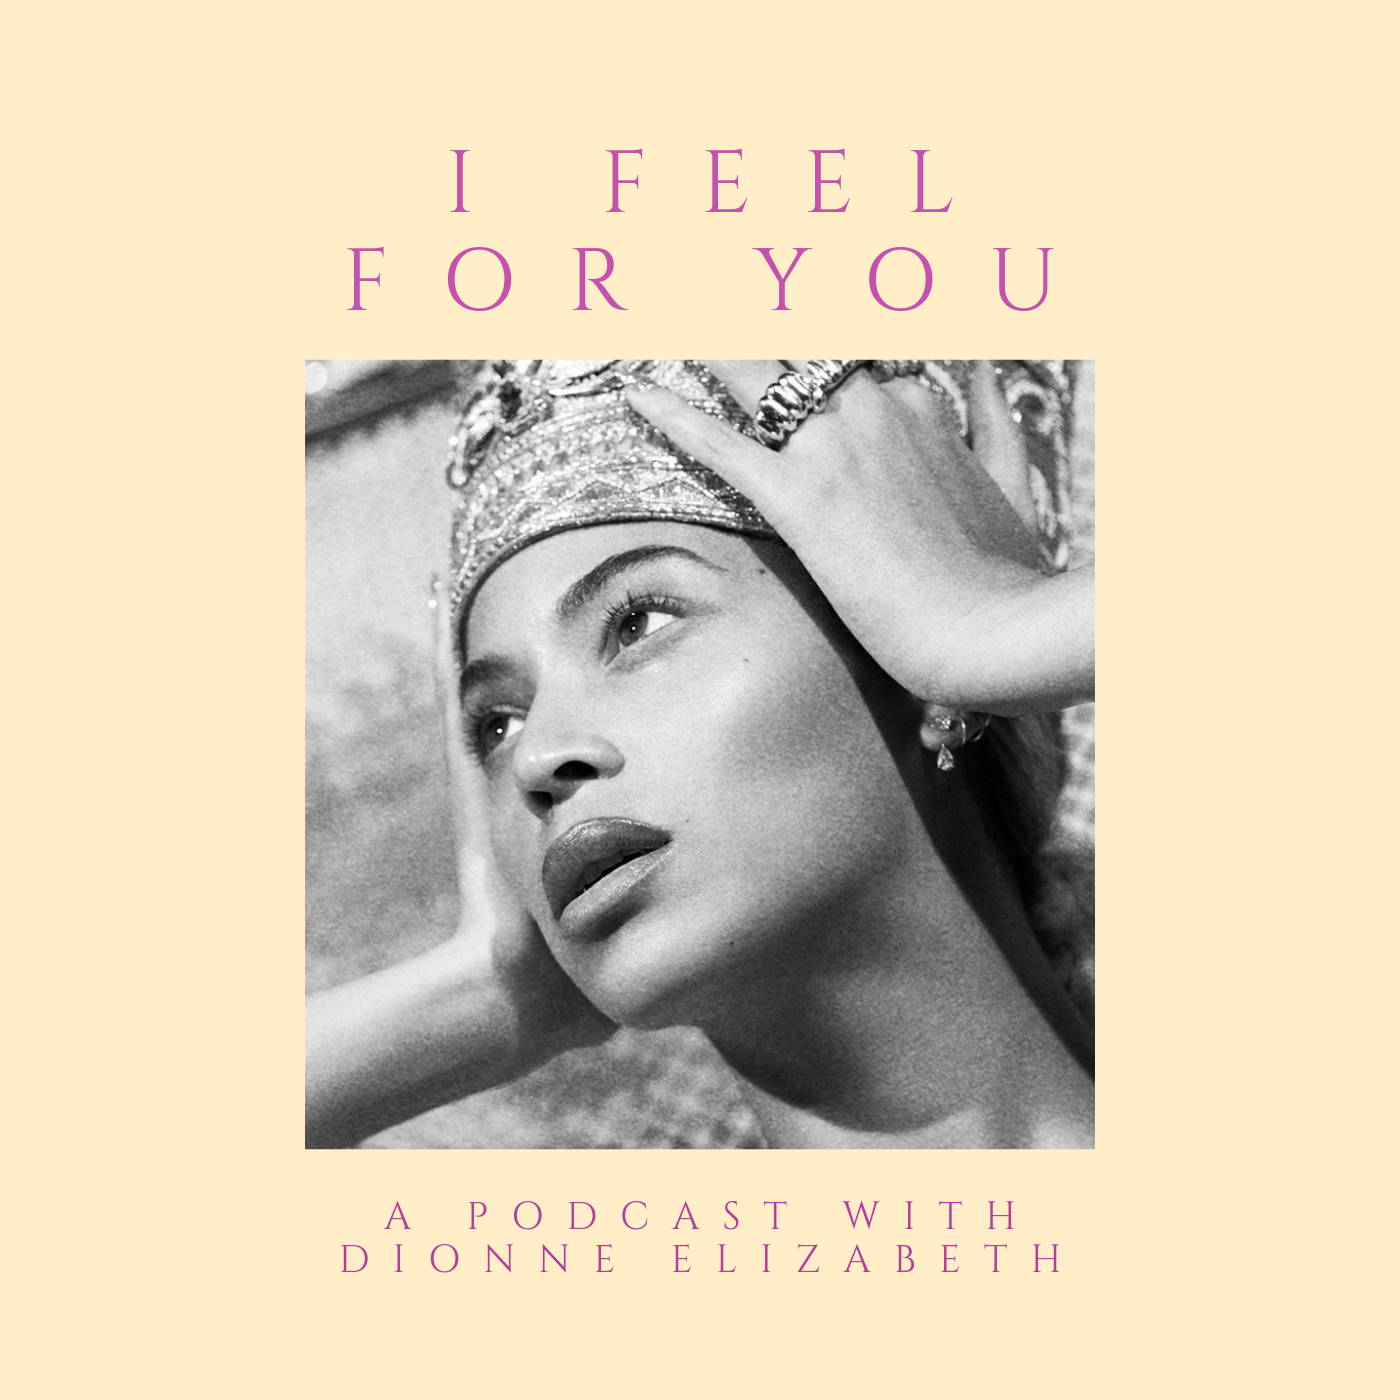 i feel for you podcast episode 35